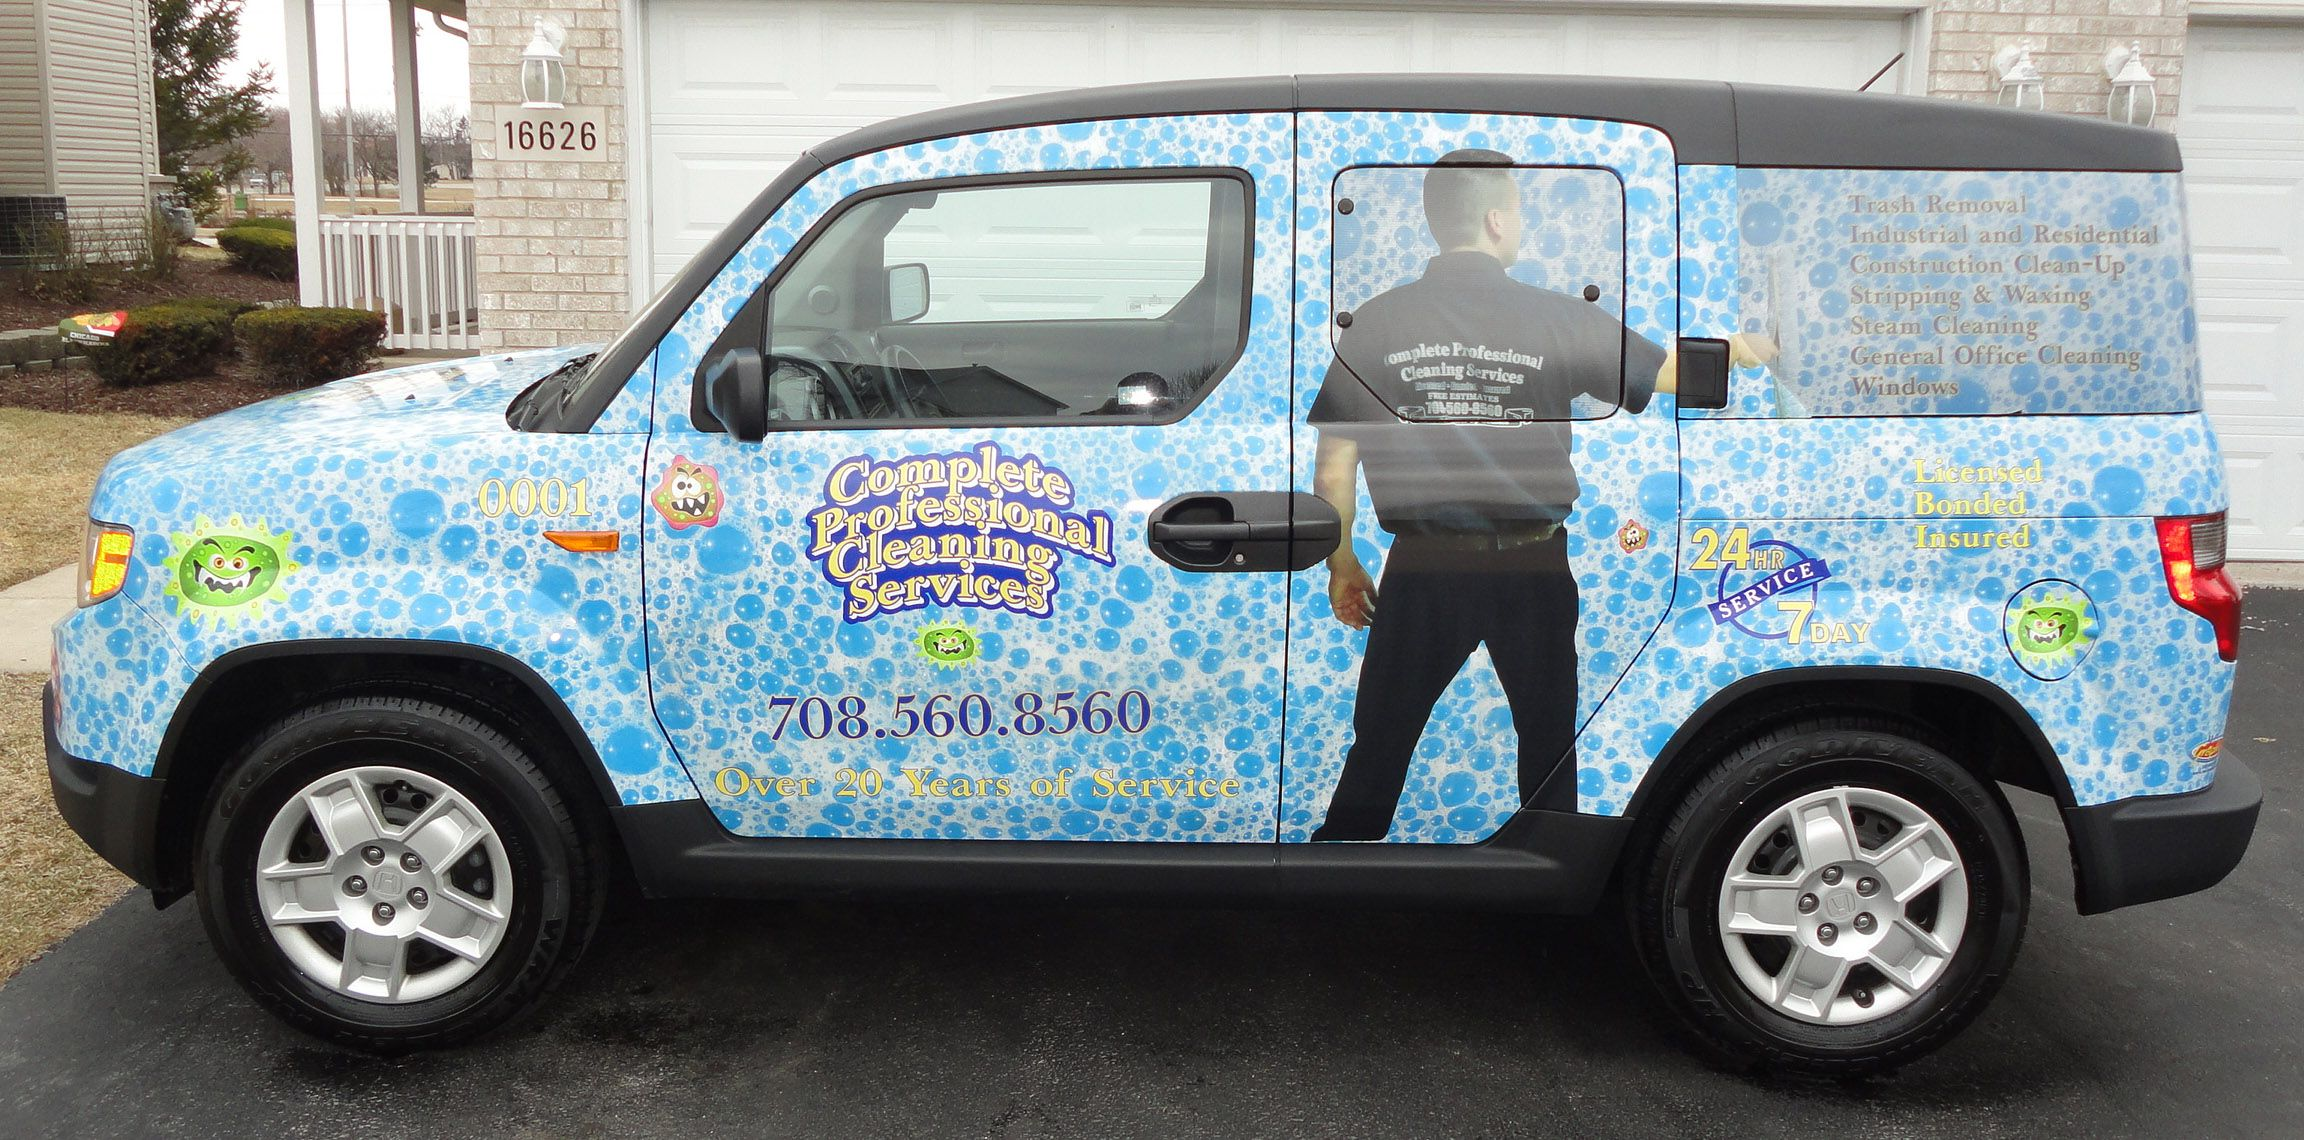 Full Vehicle Wrap Done For Complete Professional Cleaning Service Graphics New Lenox